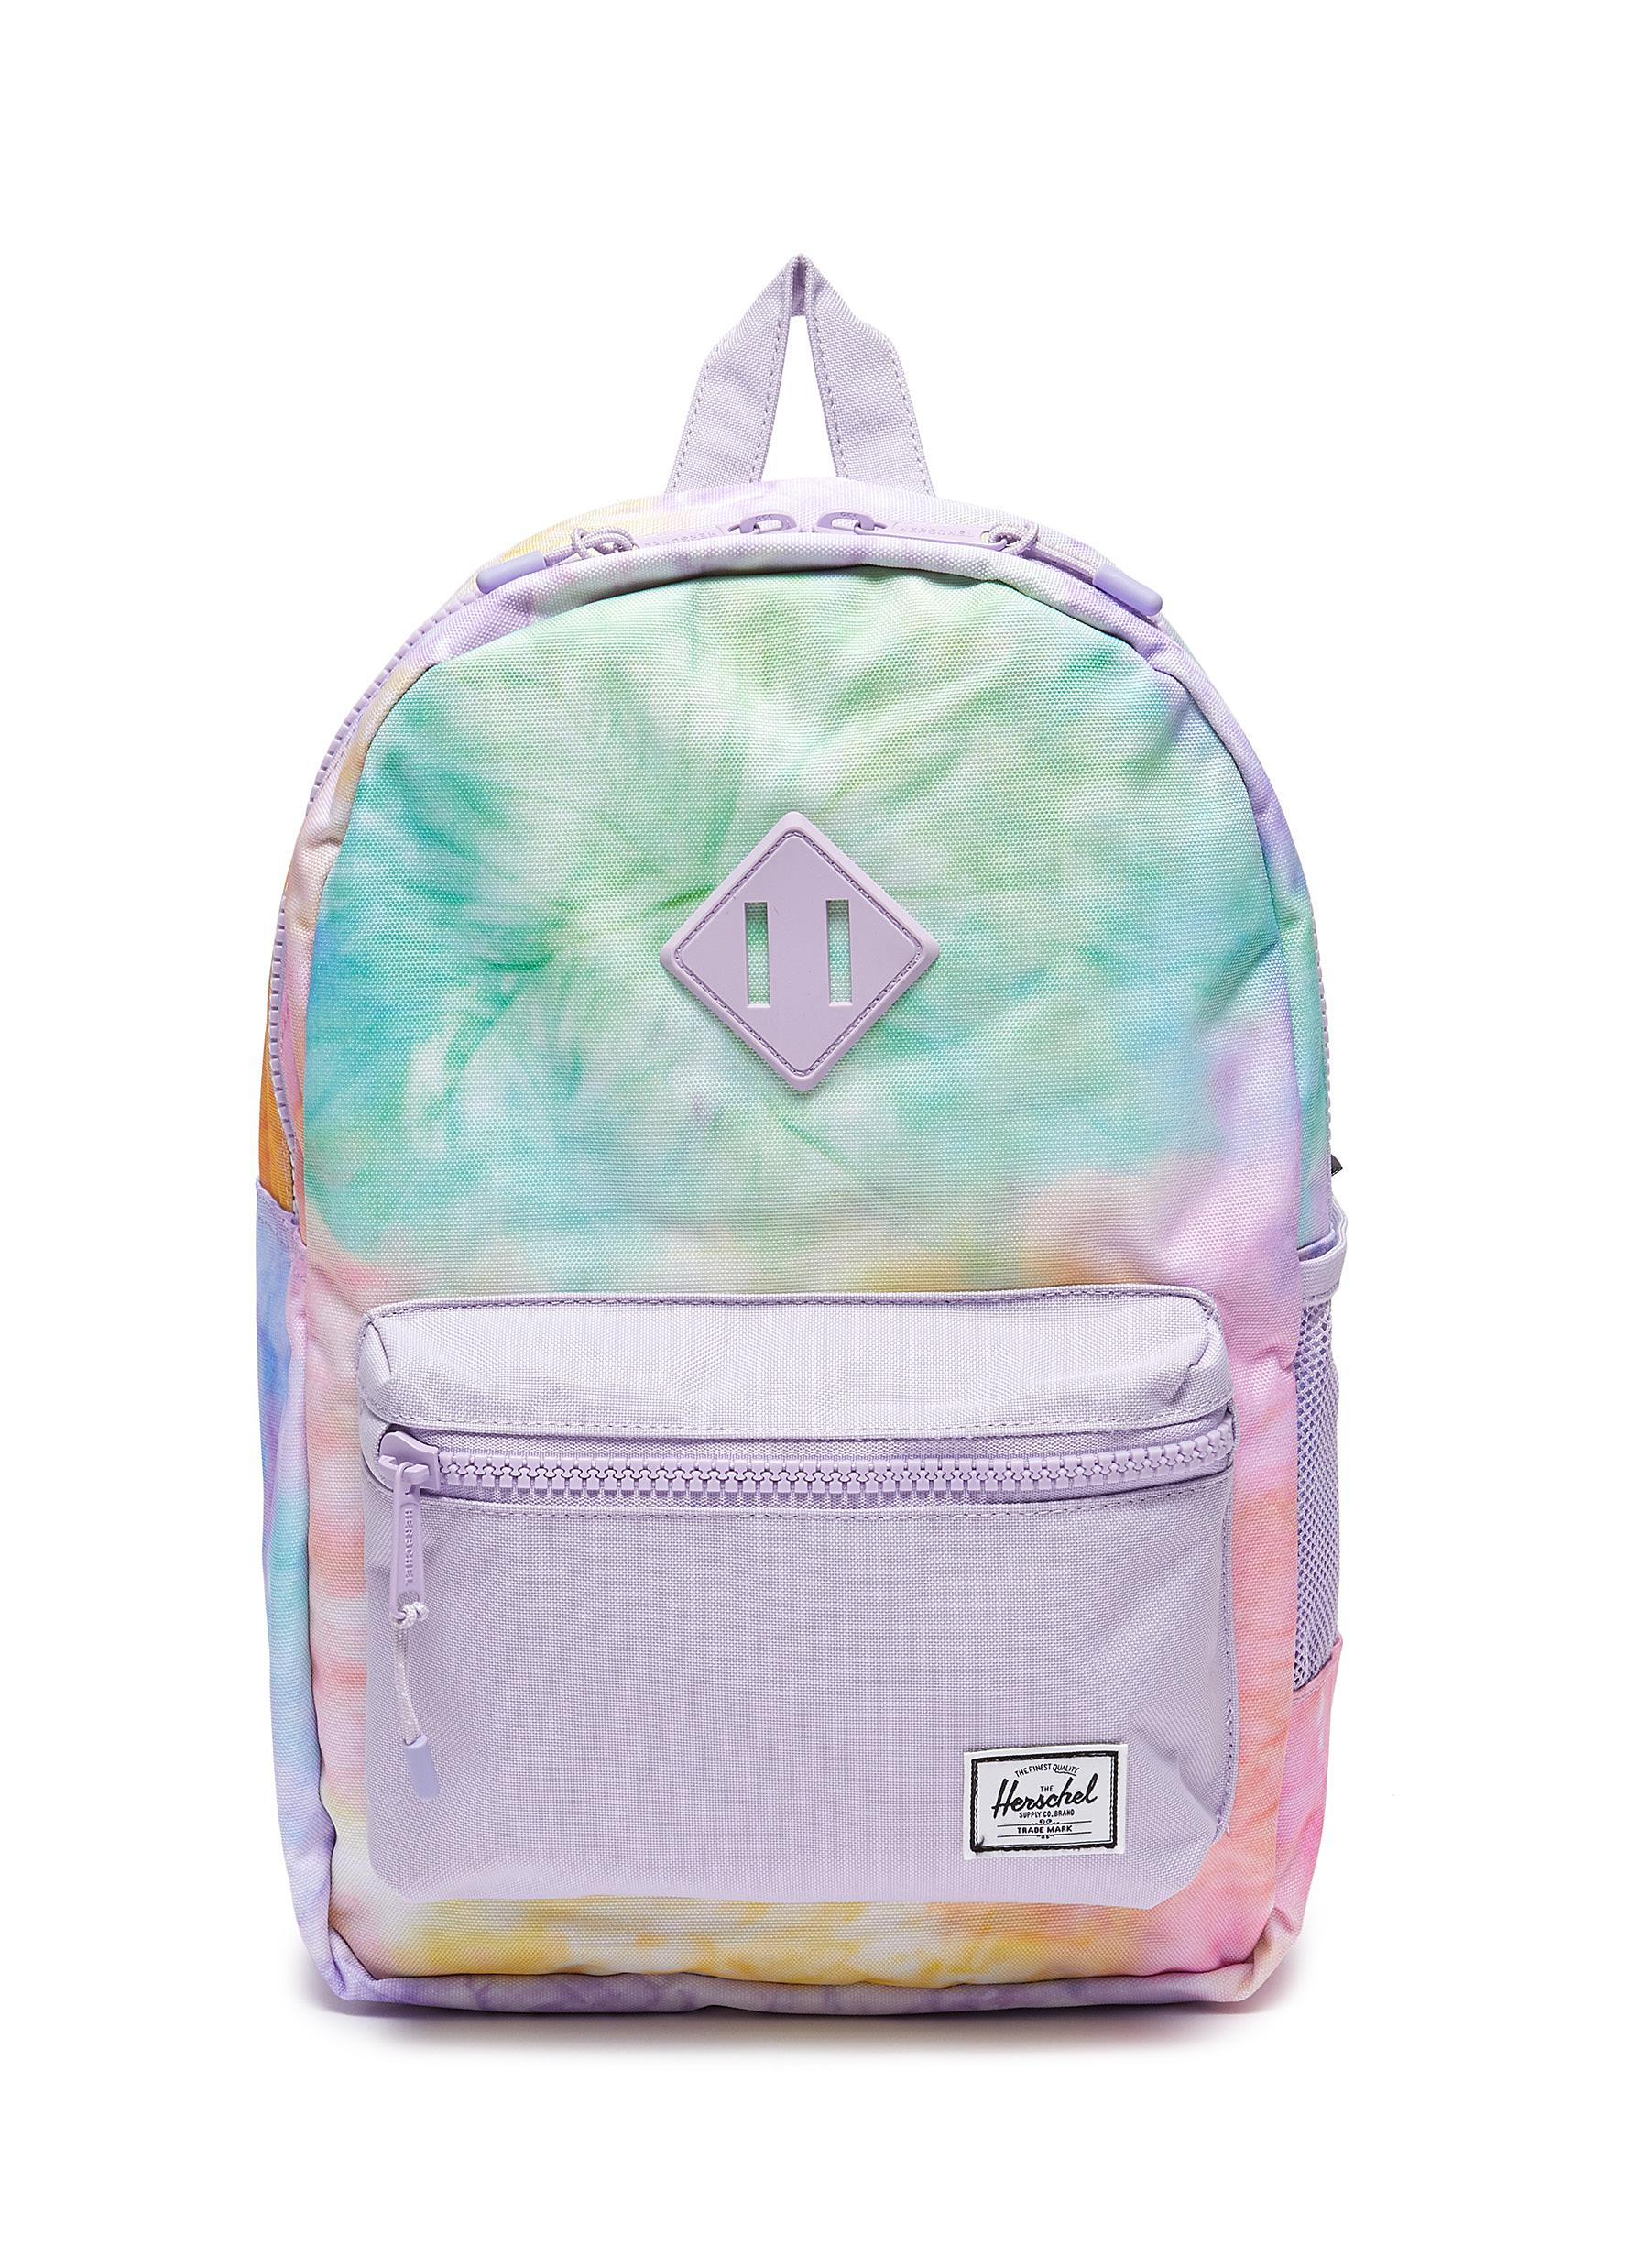 """Heritage Youth' Tie-dye Pattern Canvas Toddler and Kids Backpack"""" - THE HERSCHEL SUPPLY CO. - Modalova"""